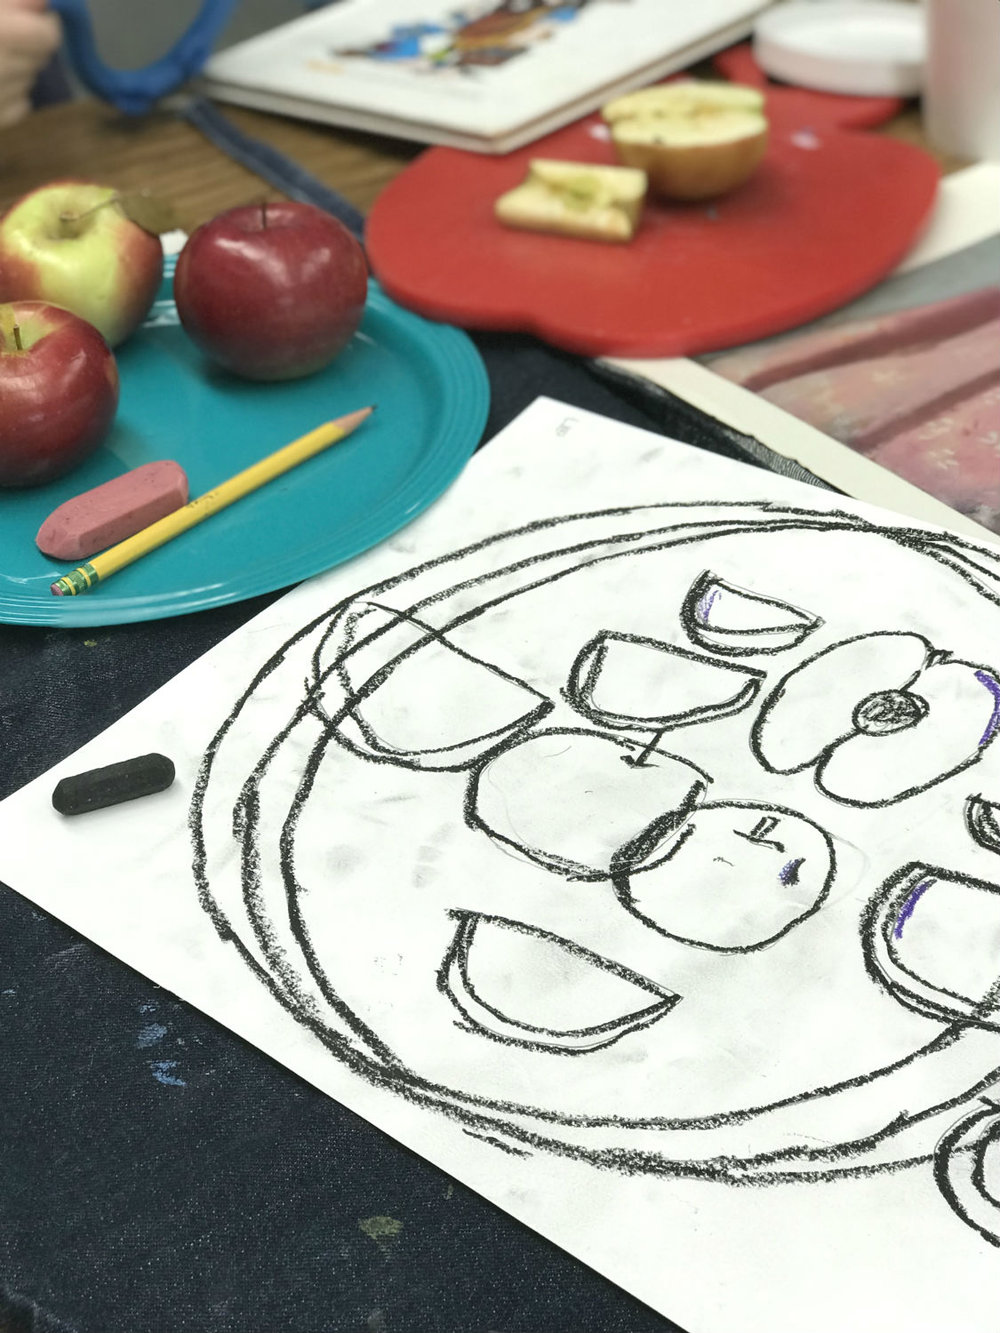 drawing-apples-from observation.jpg